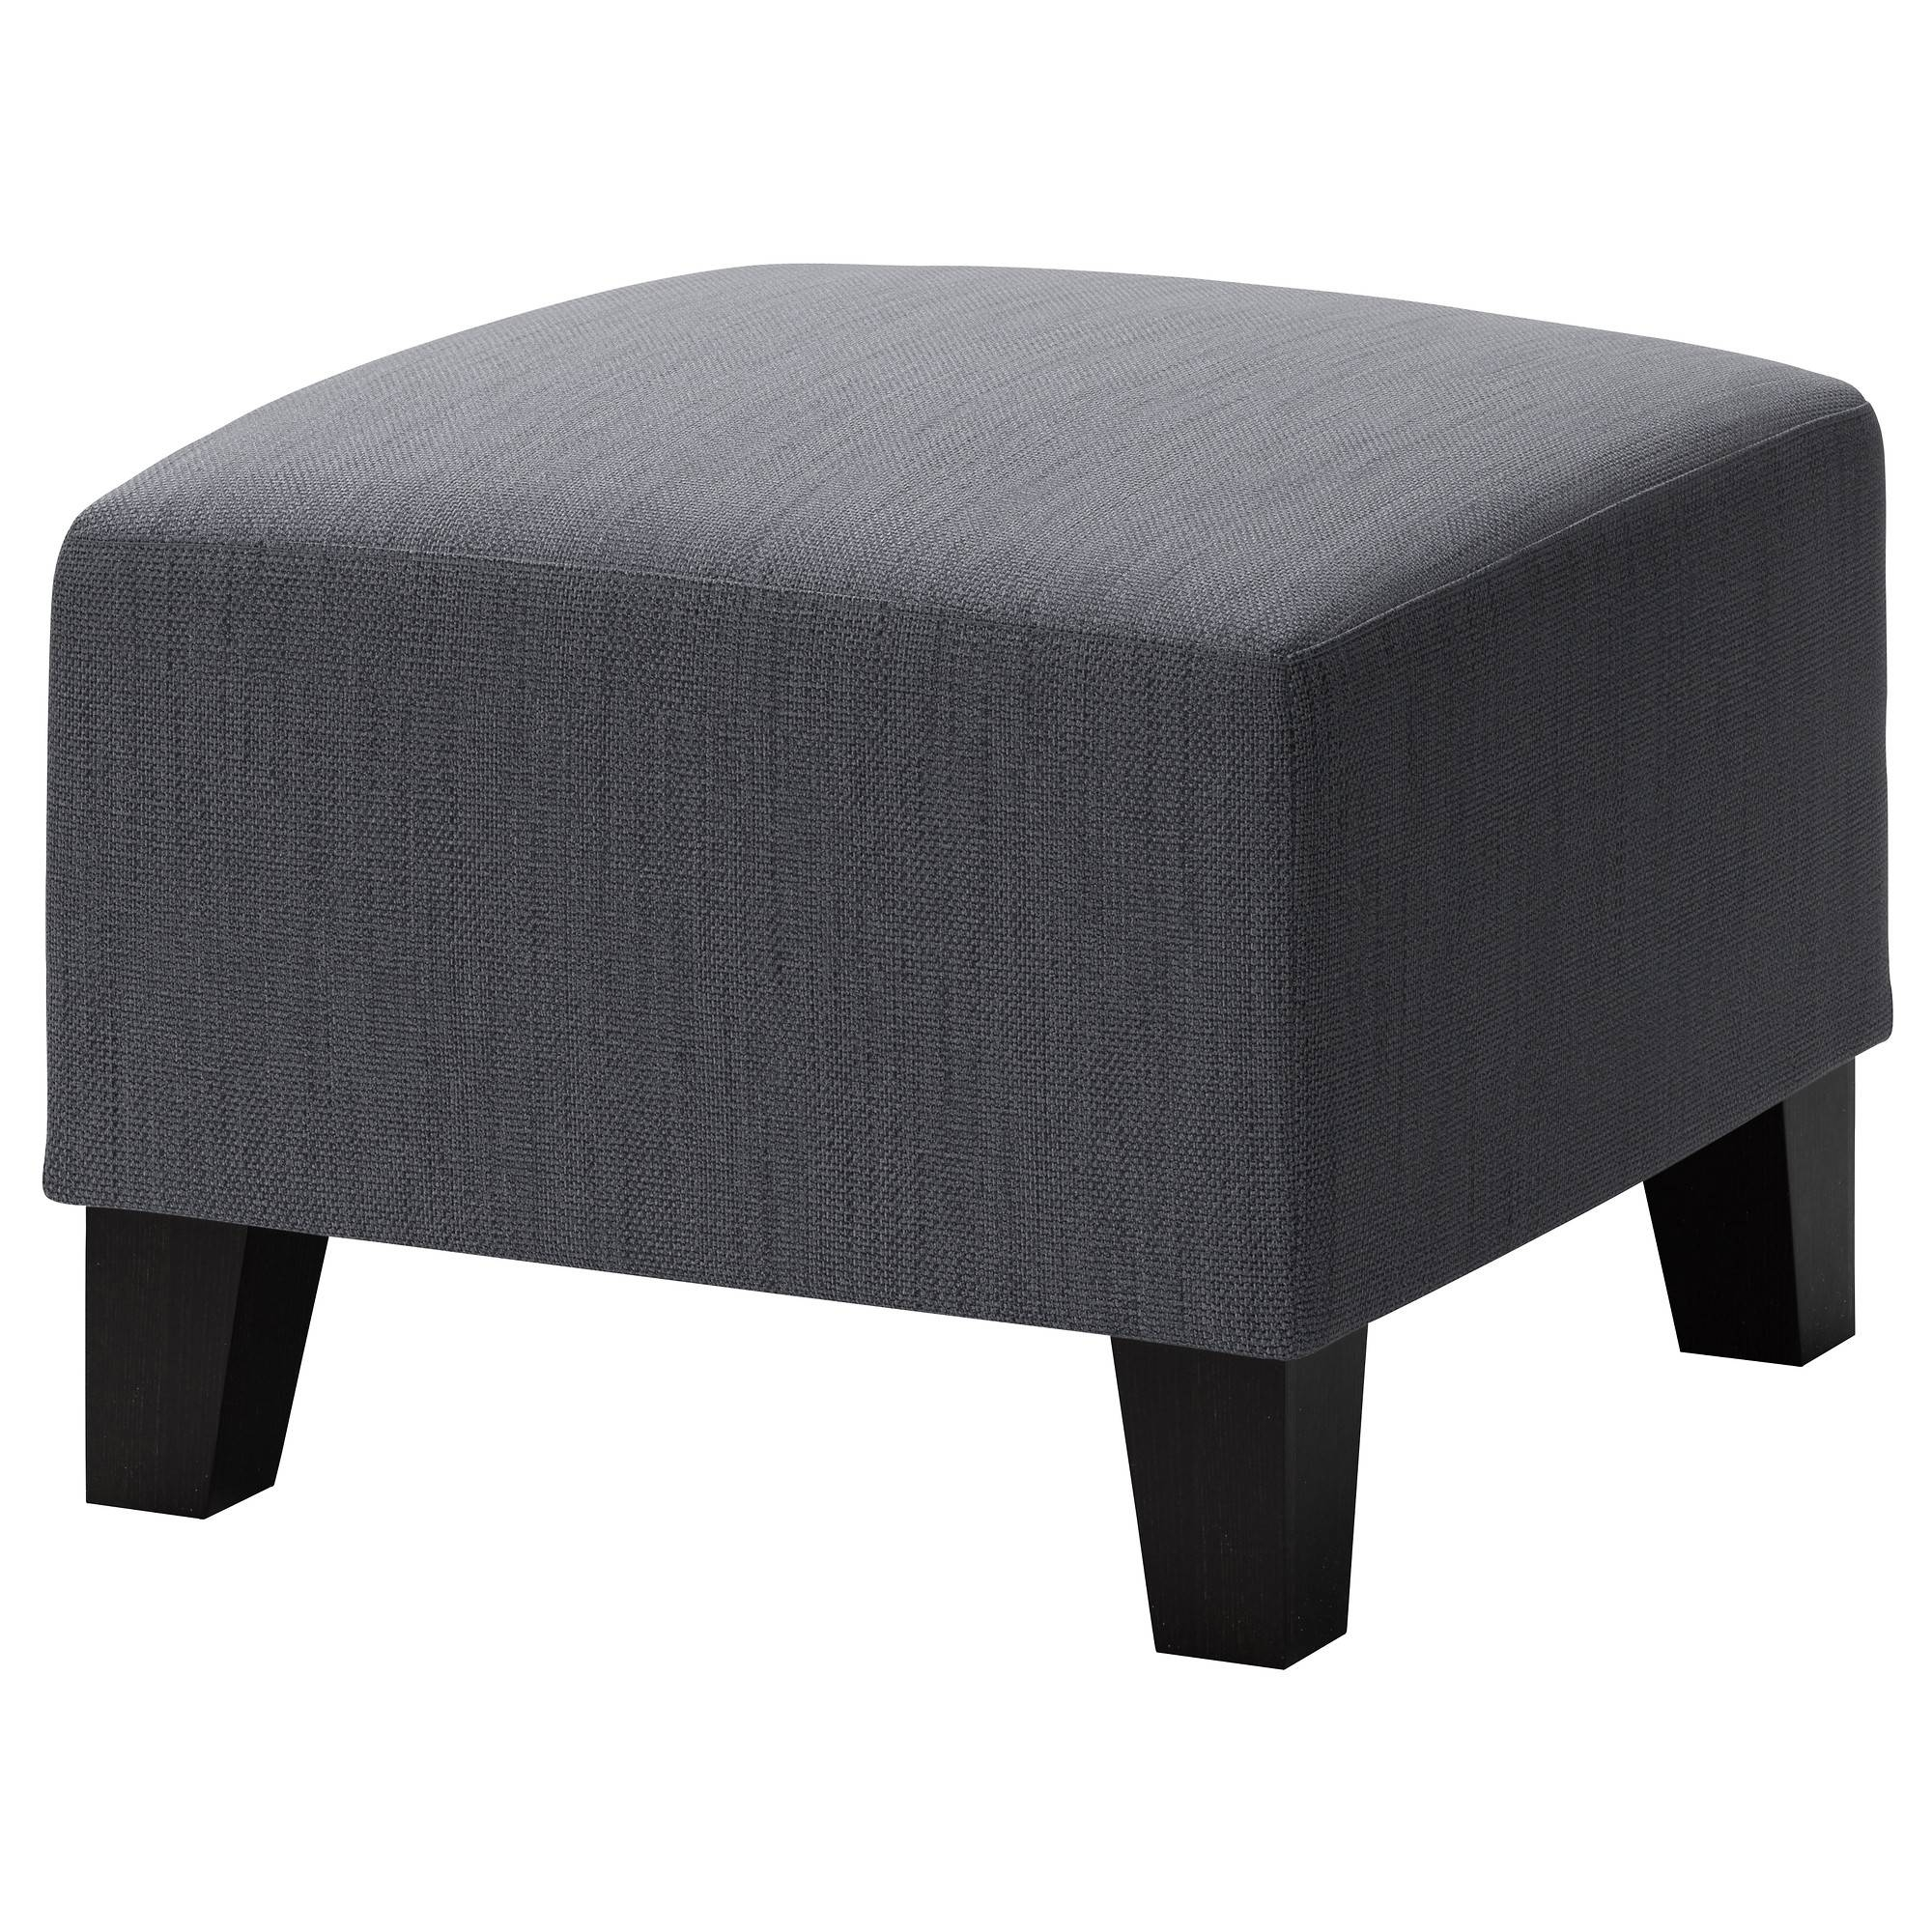 Fabric Ottomans - Ikea inside Fabric Footstools (Image 8 of 30)